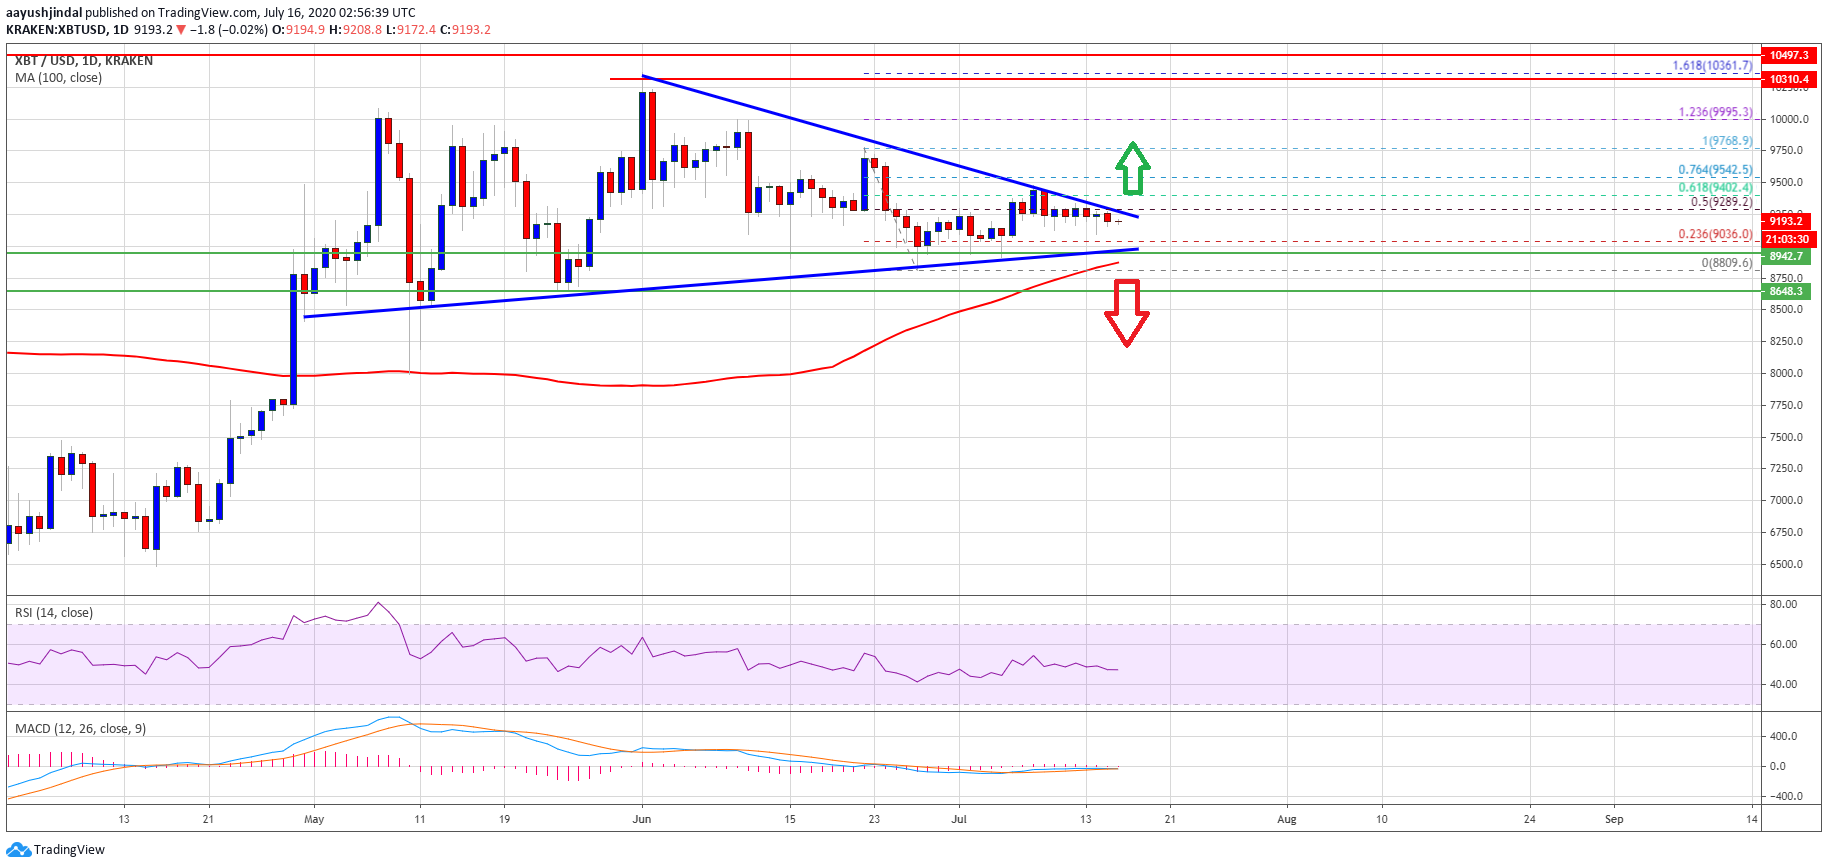 100-day SMA Could Ignite a Bullish Breakout for Bitcoin: Here's Why